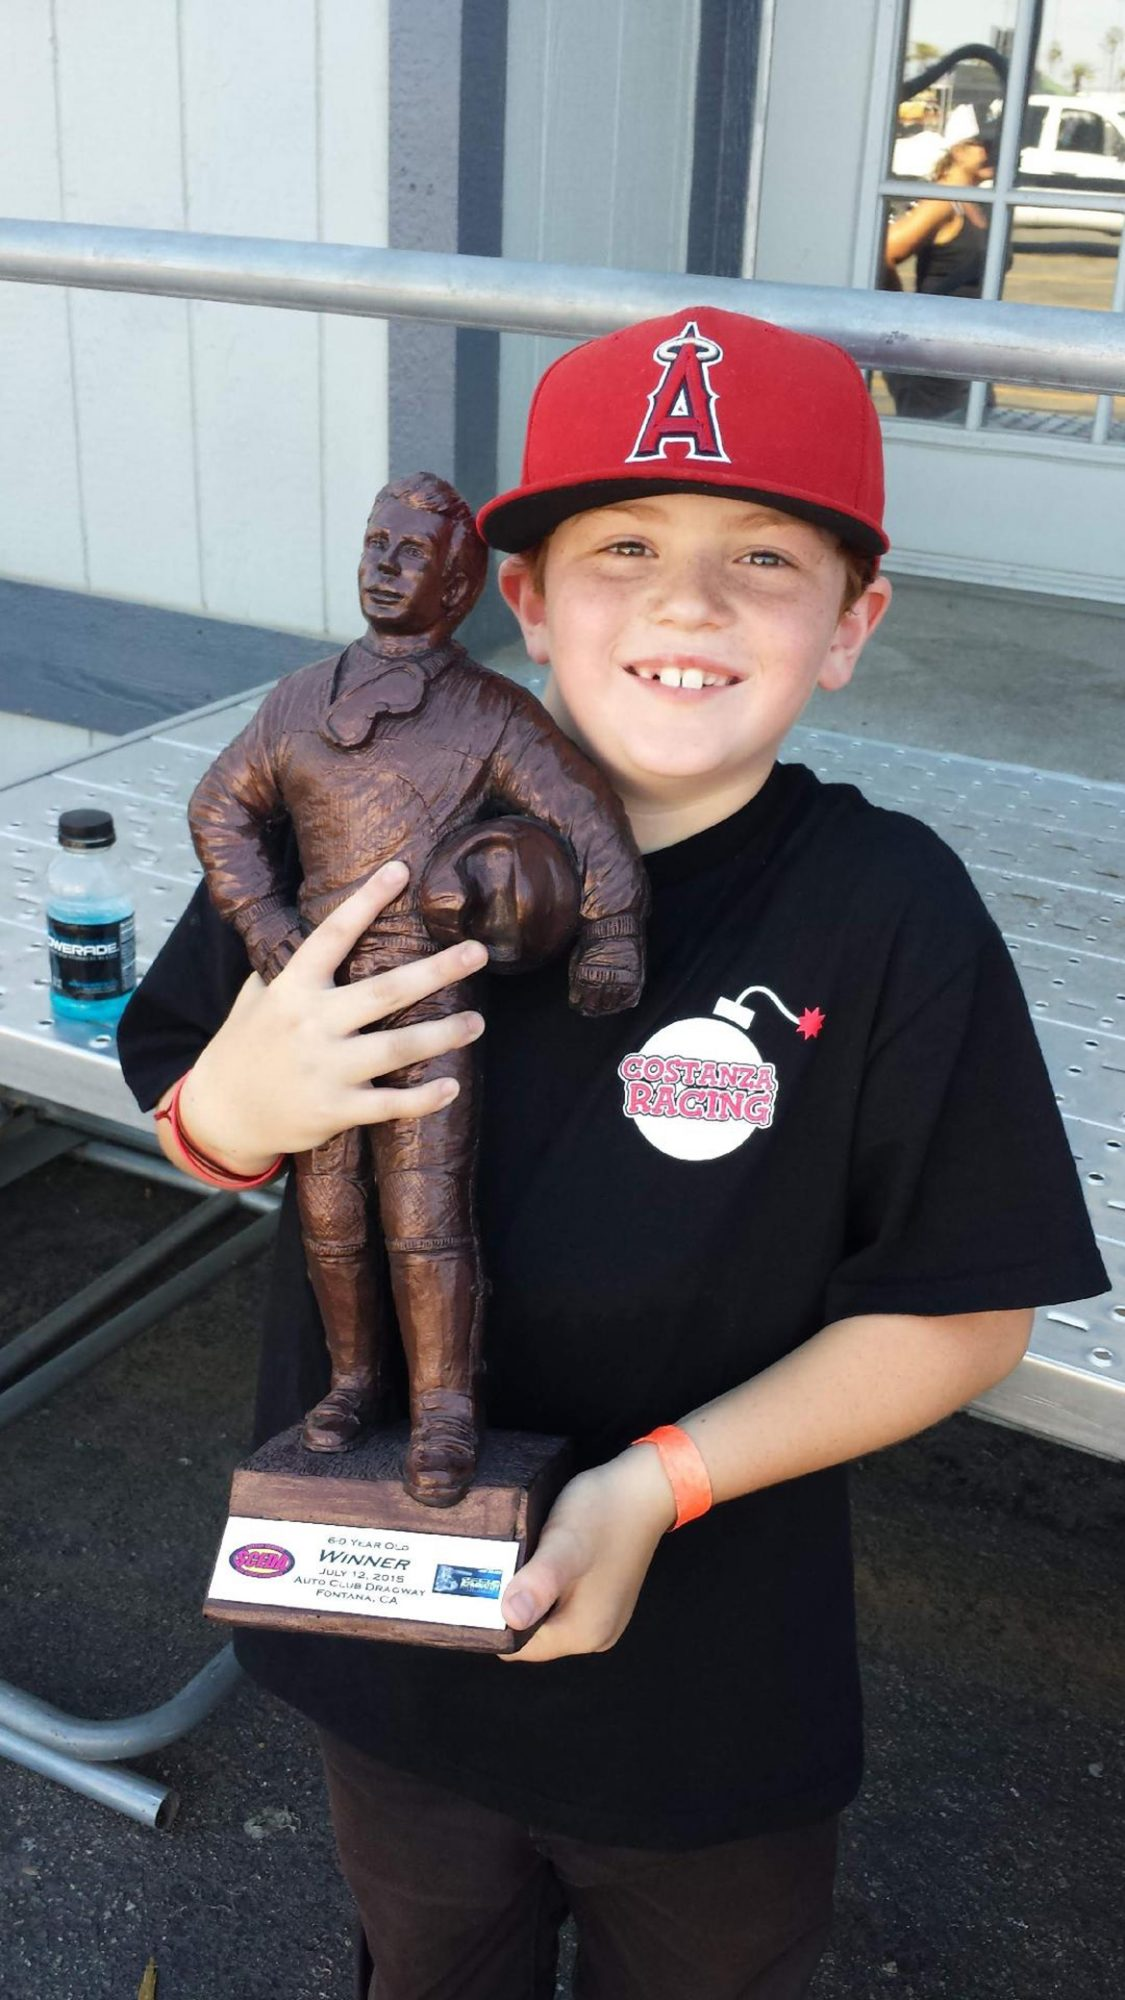 Young boy holding a trophy